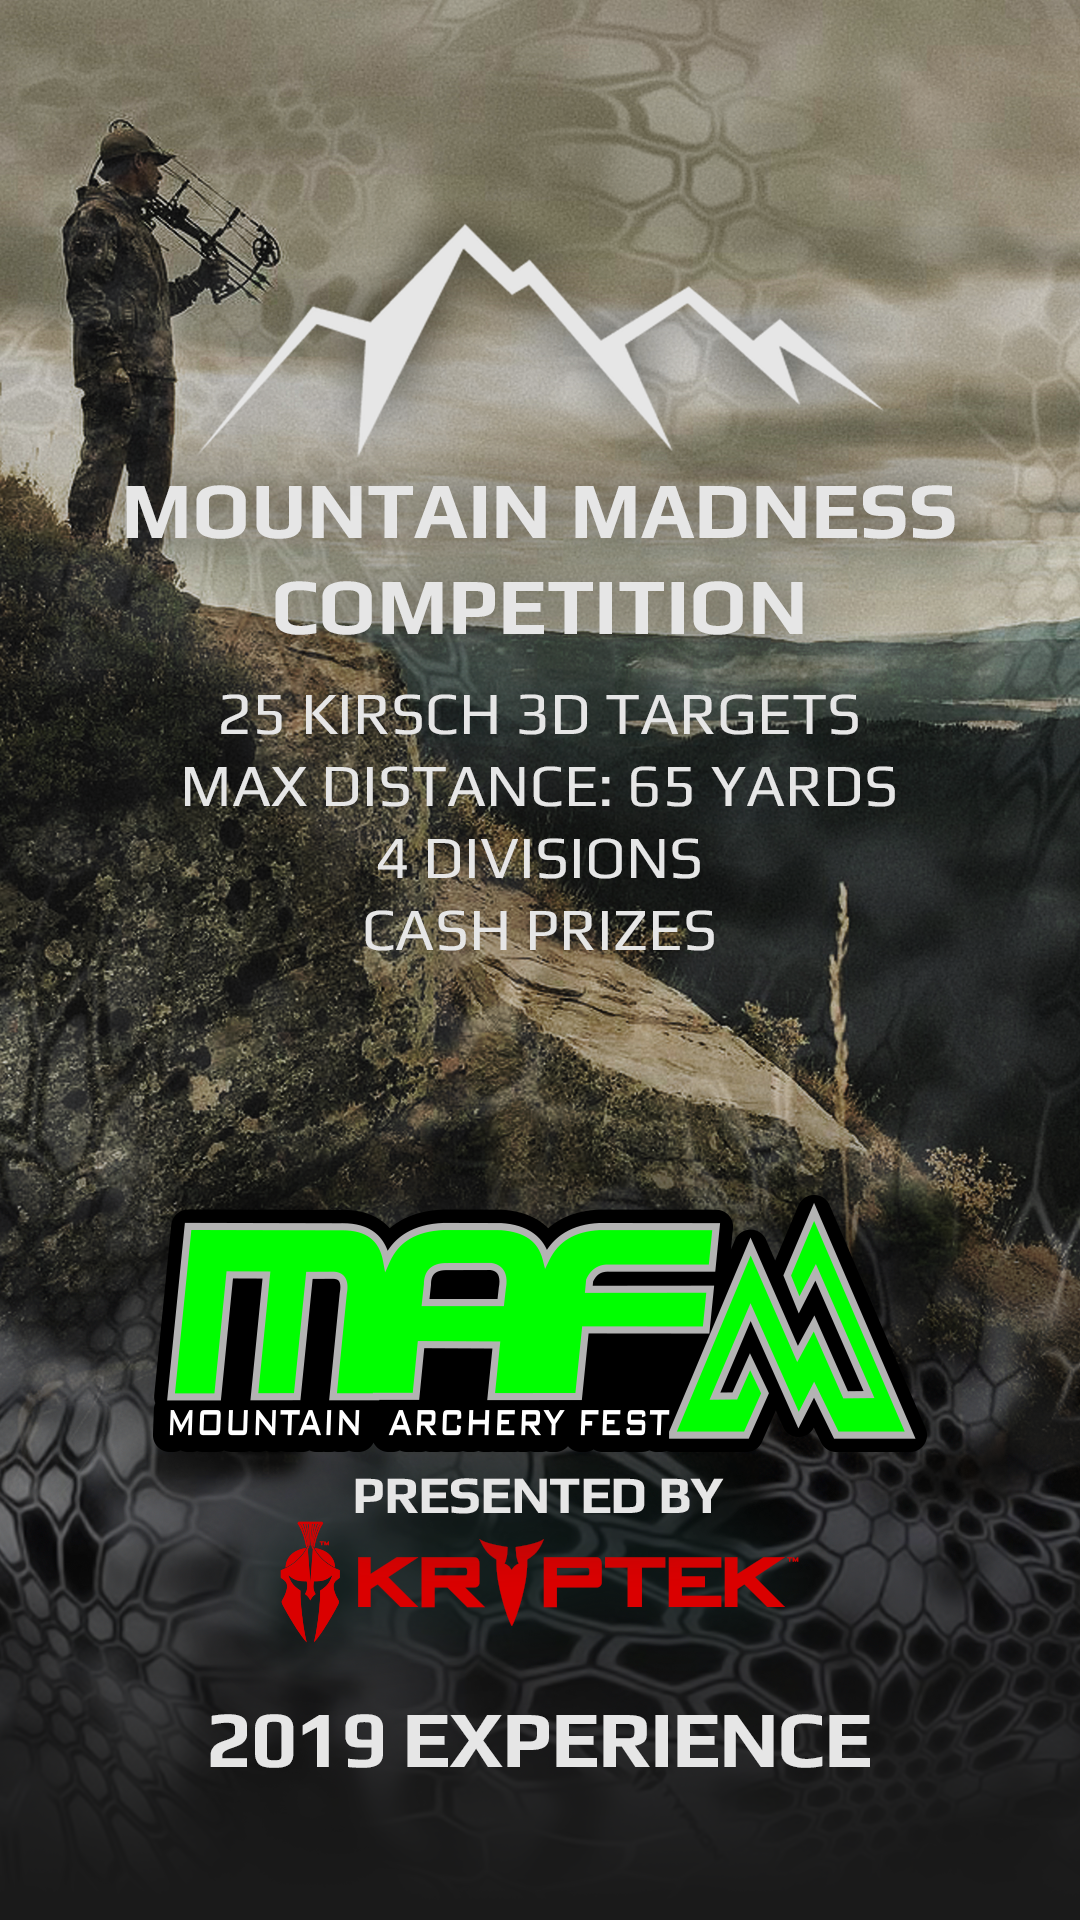 maf_social_igstory_experience_mountainmadness_v1.png